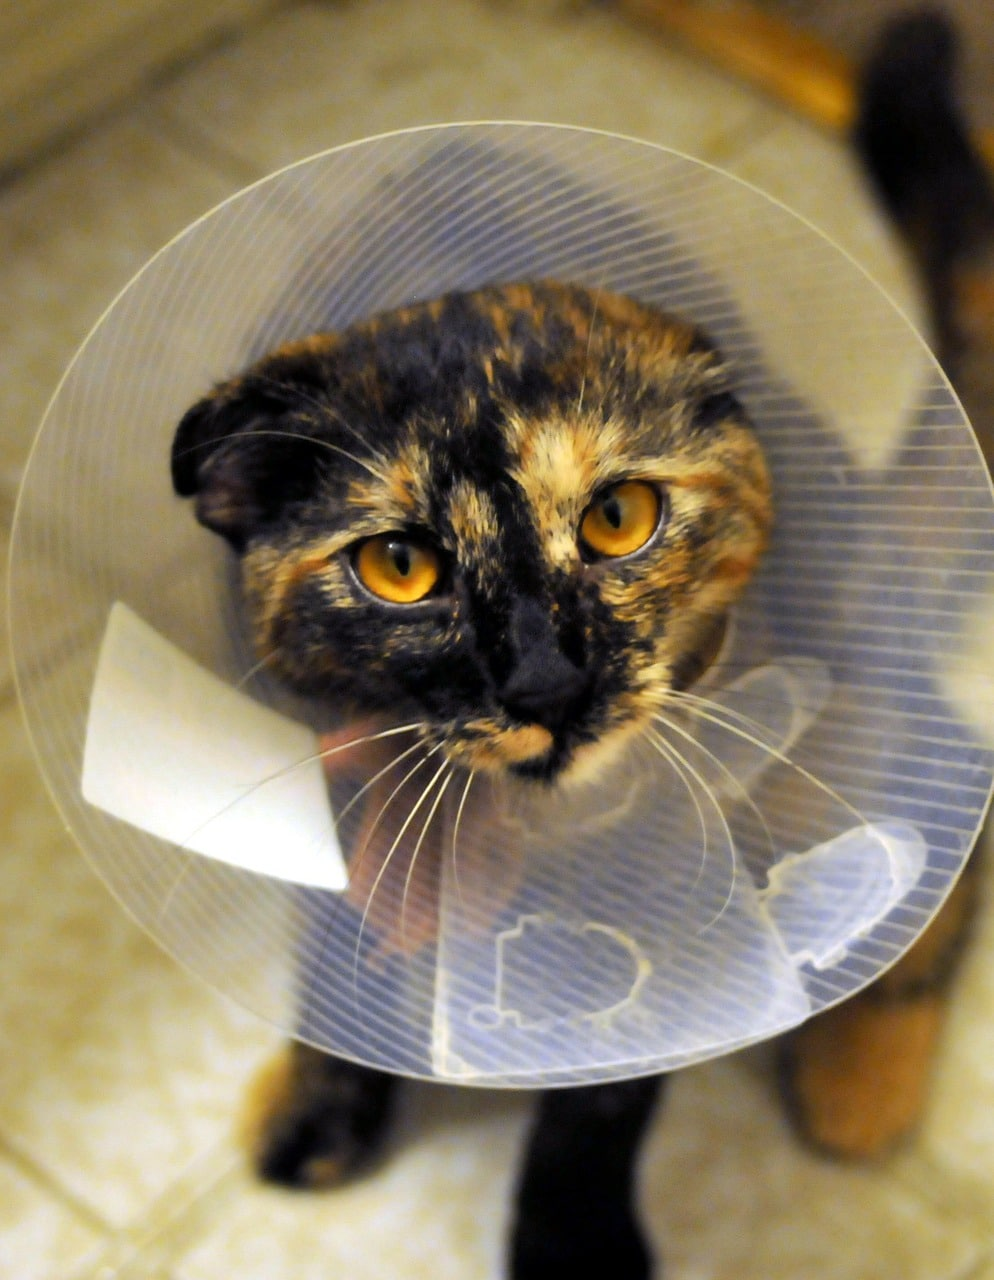 Cat after surgery